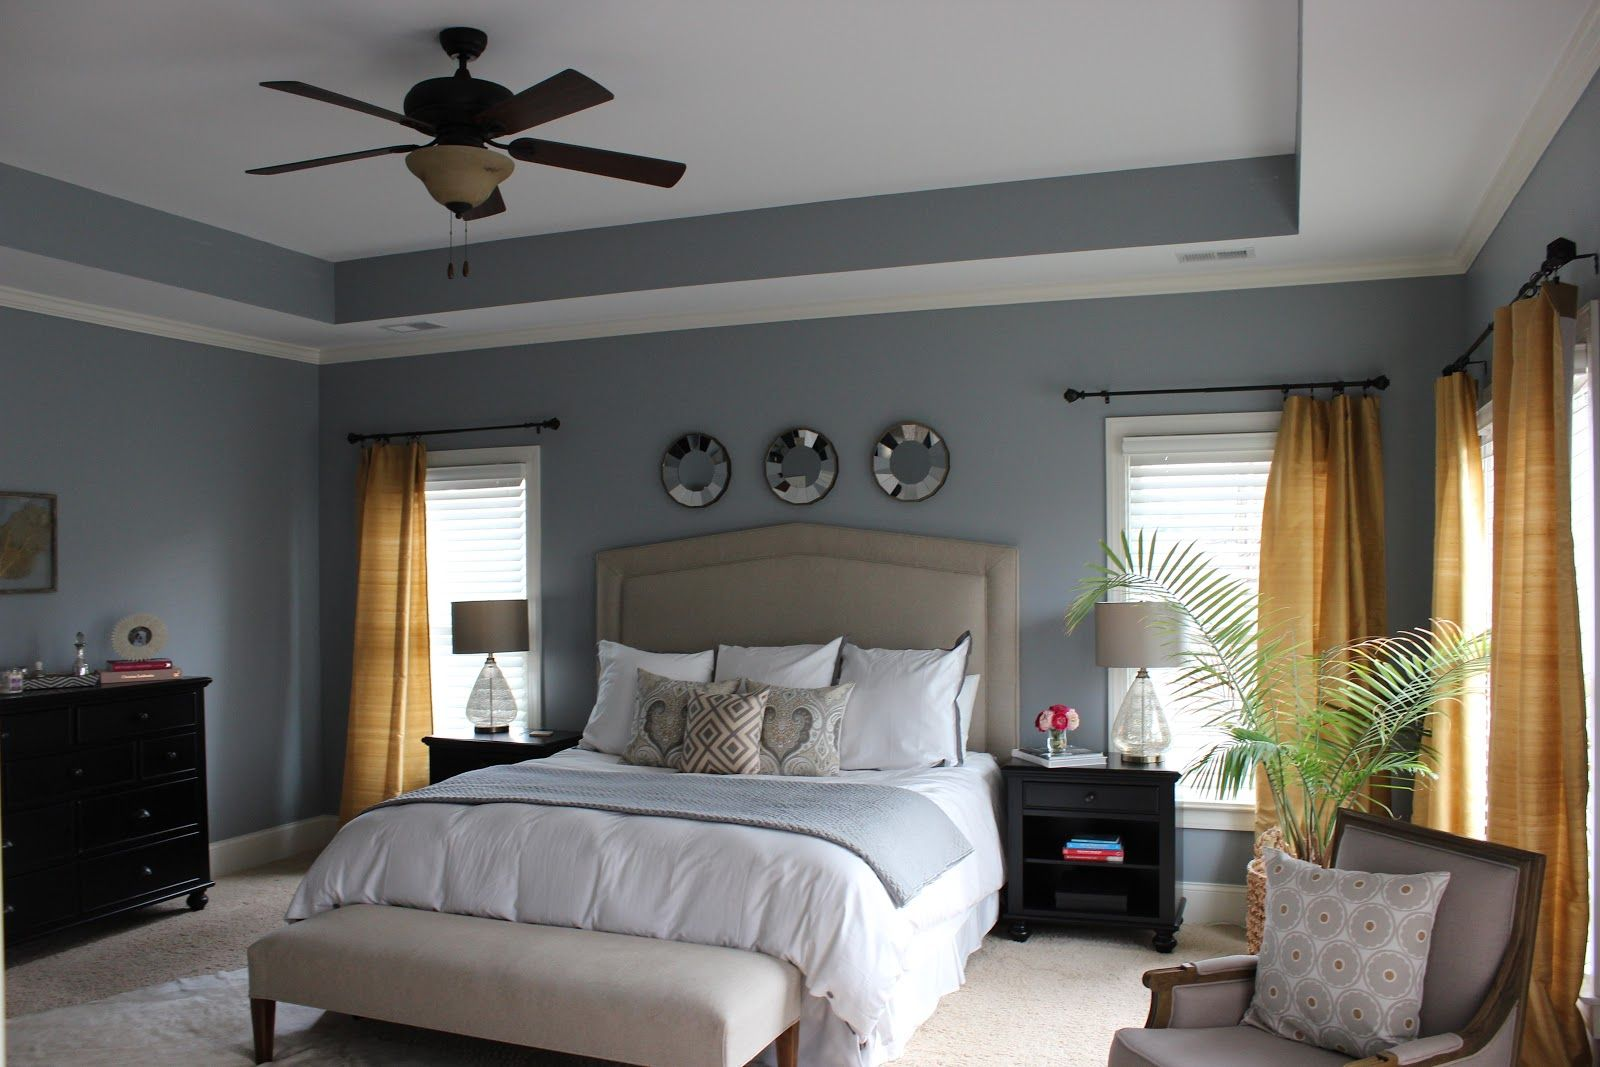 Benjamin moore gull wing grey walls great master bedroom Decorating ideas for bedroom with gray walls